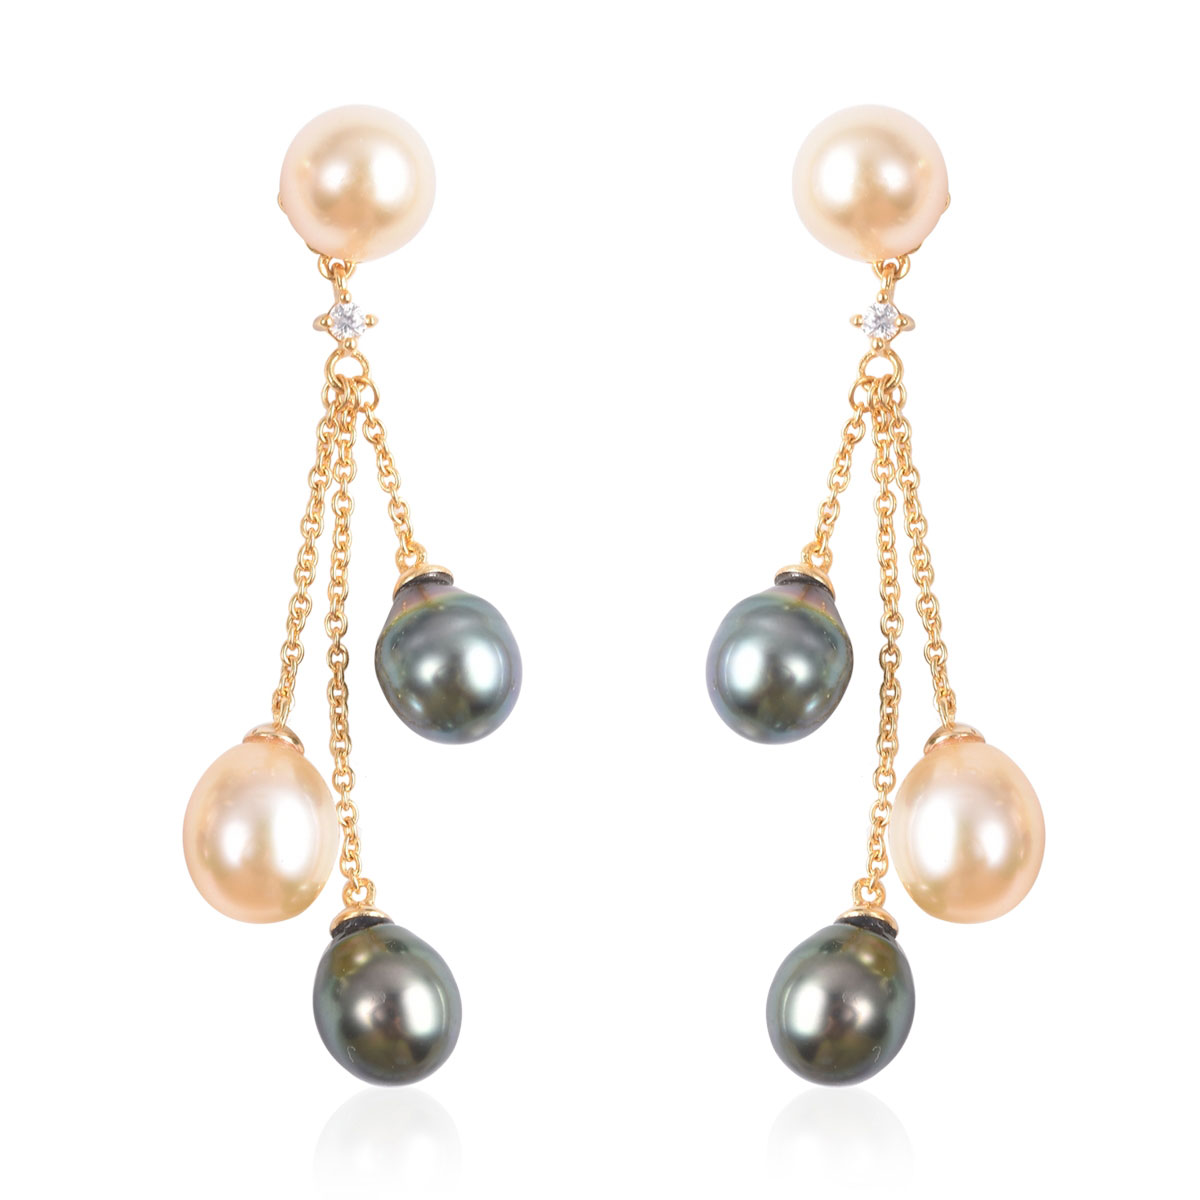 Ivory White Cultured Pearl Earrings Sterling Silver Lever Backs